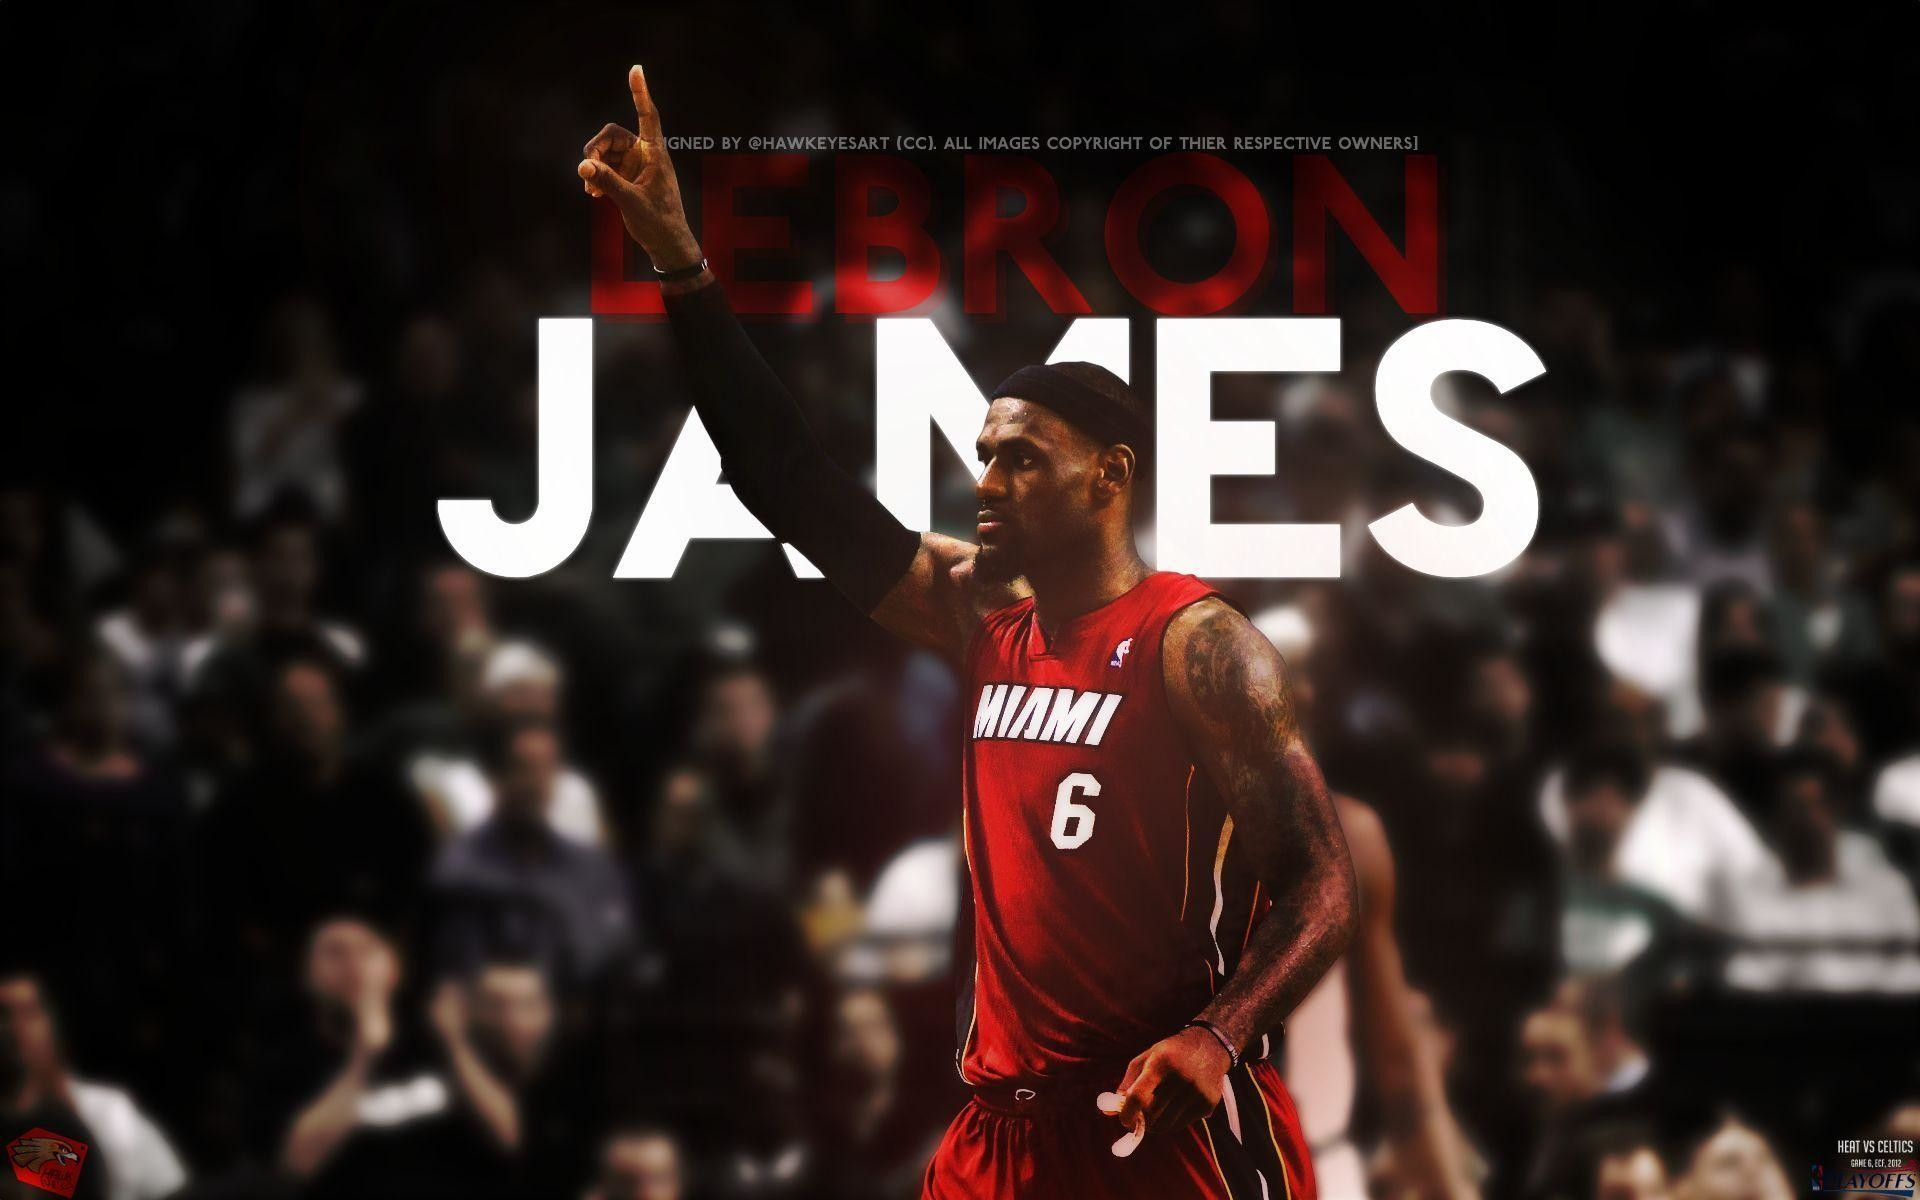 1920x1200 LeBron James Miami Heat HD Desktop Wallpaper #207 | TanukinoSippo.